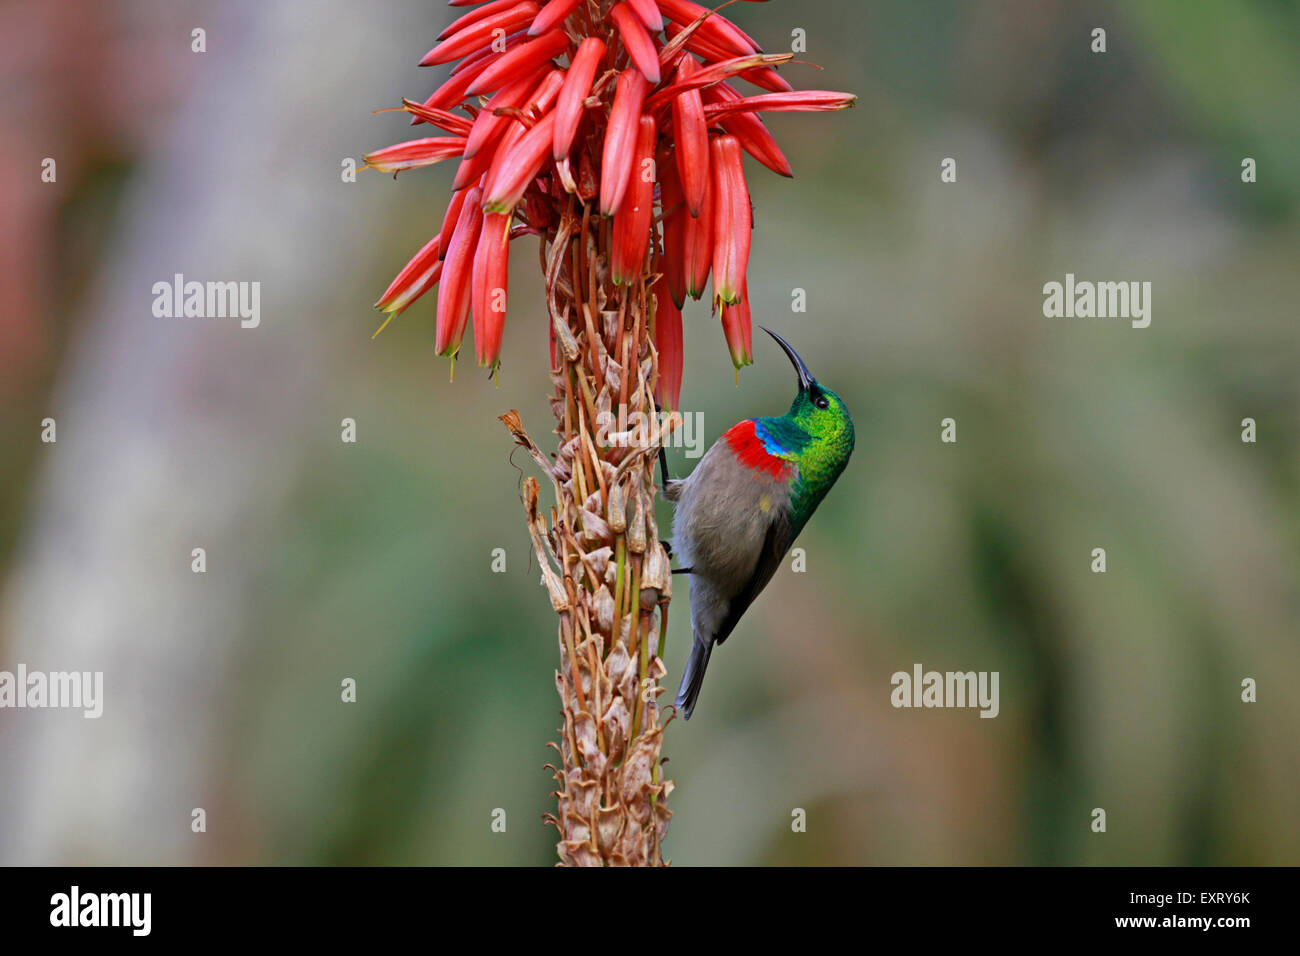 A  southern double-collared sunbird or lesser double-collared sunbird (Cinnyris chalybeus) pollinating a Aloe flower. - Stock Image